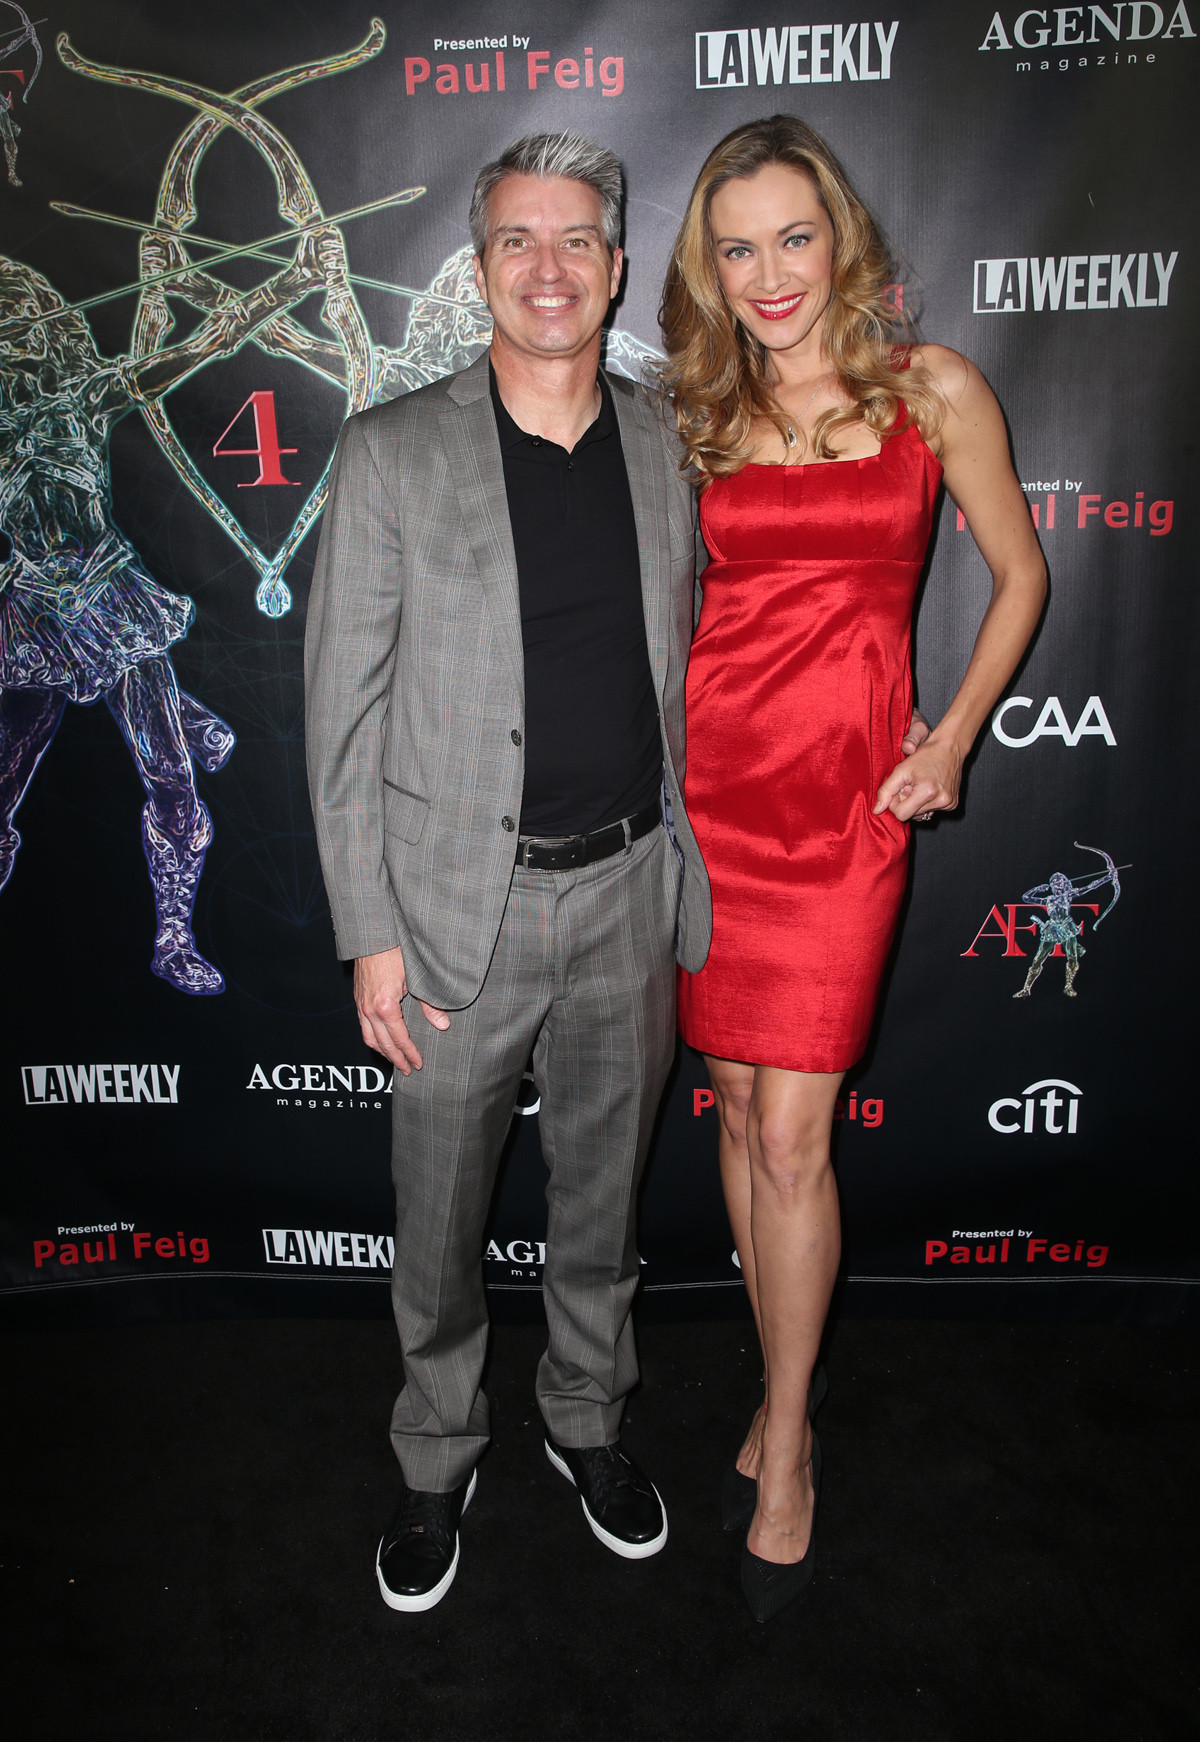 BEVERLY HILLS, CA - APRIL 26: Kristanna Loken, Jonathan Bates, at the 2018 Artemis Awards Gala at the Ahrya Fine Arts Theater in Beverly Hills, California on April 26, 2018. Credit: Faye Sadou/MediaPunch